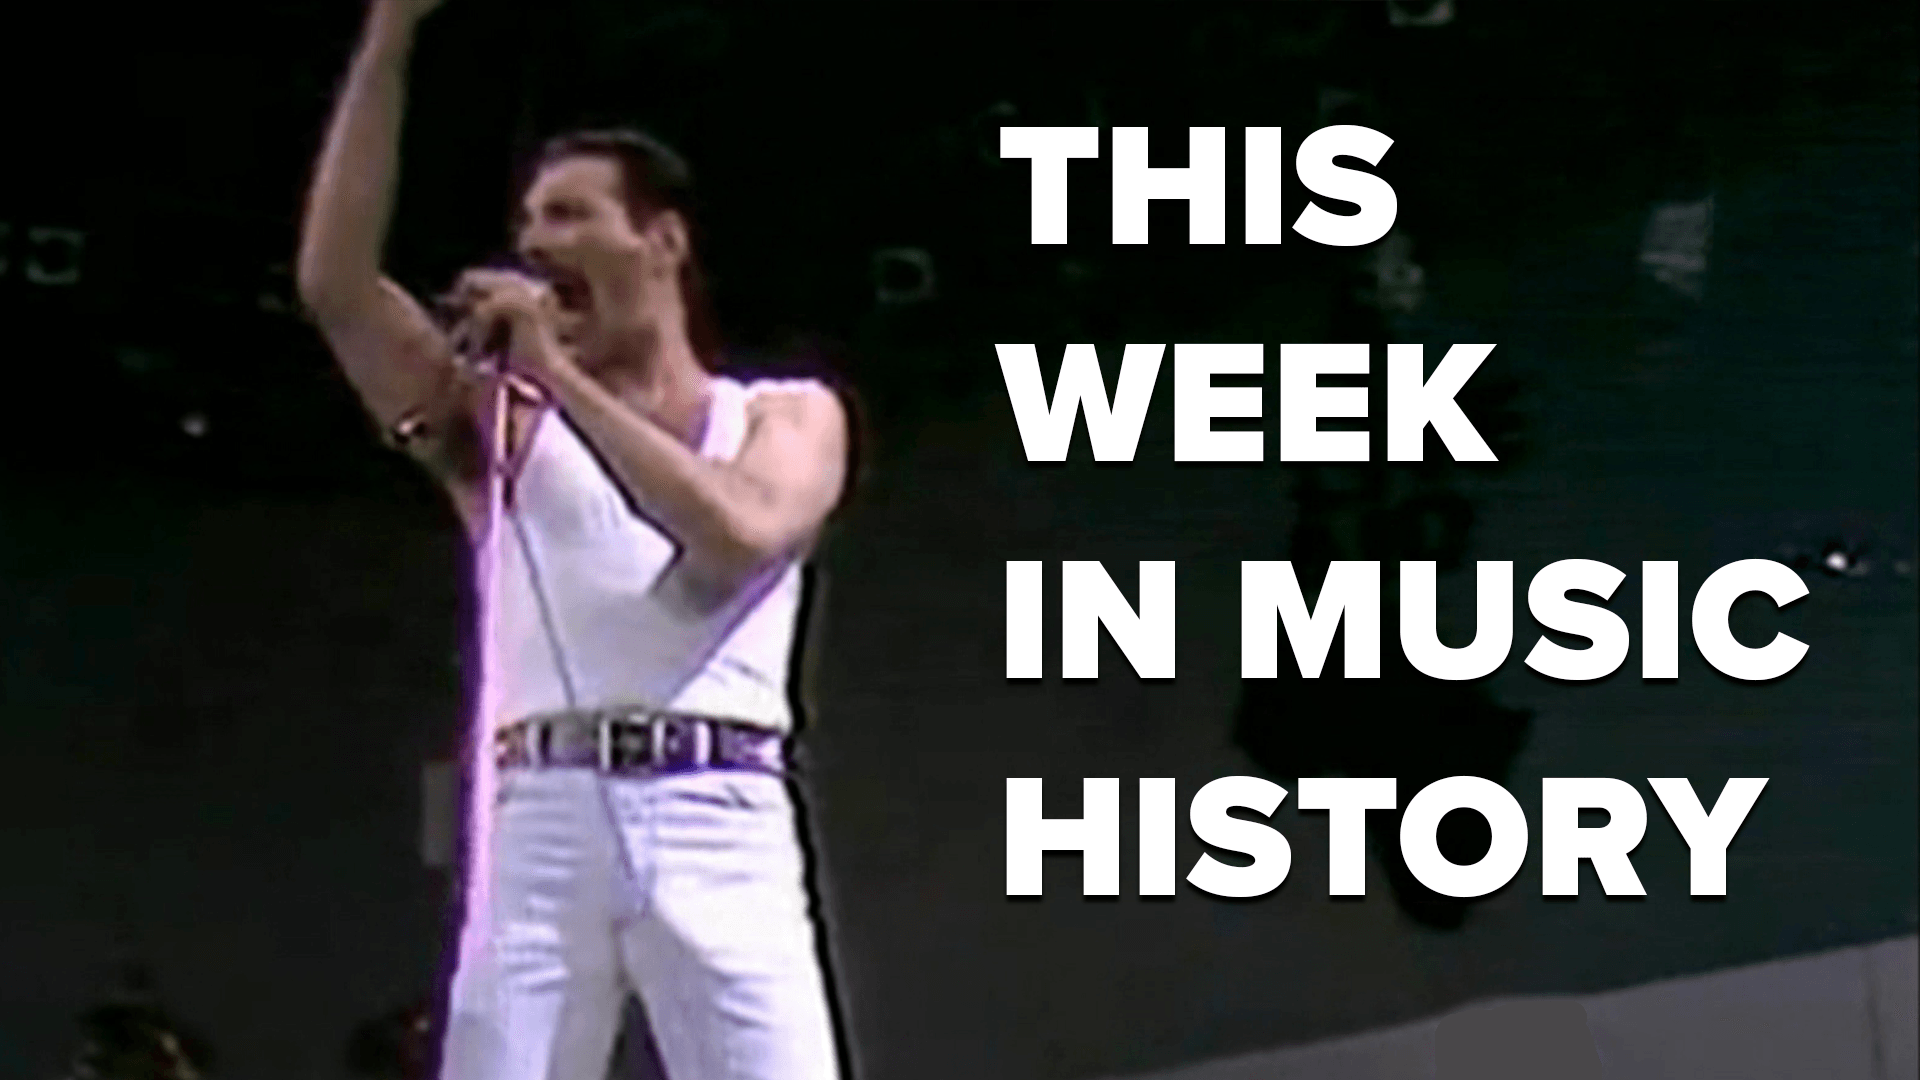 November 23 - 29 | This Week in Music History